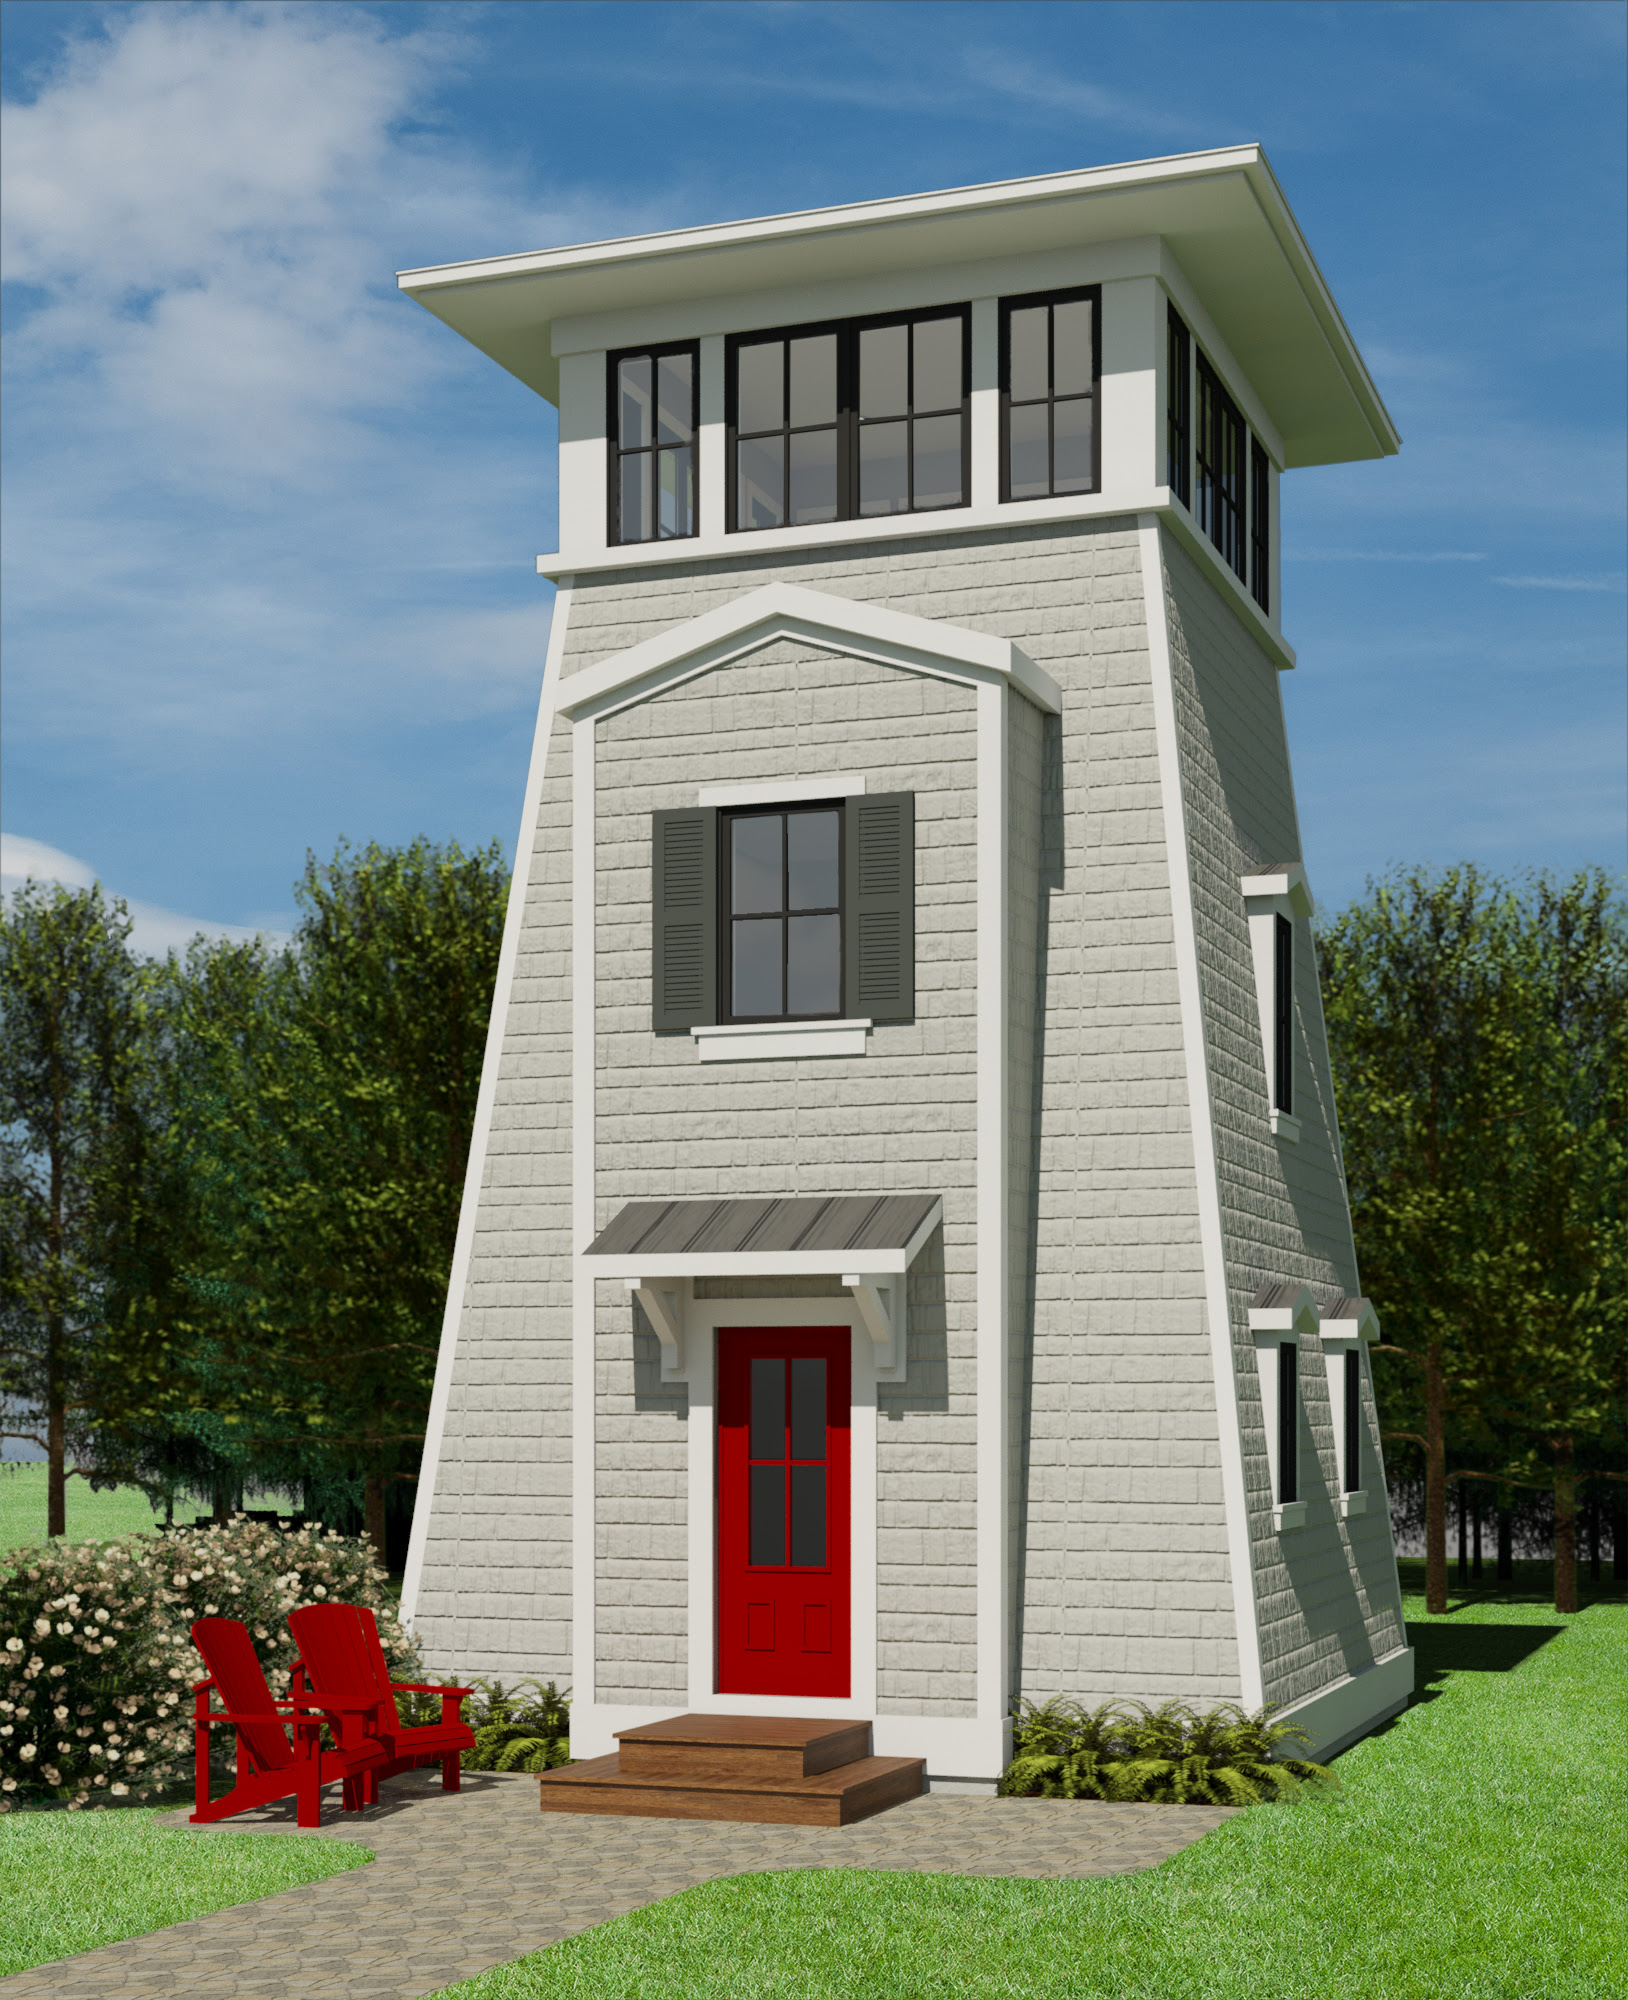 The Nova Scotia: Small Home Plans - Small House Plans For Sale Small House Bliss